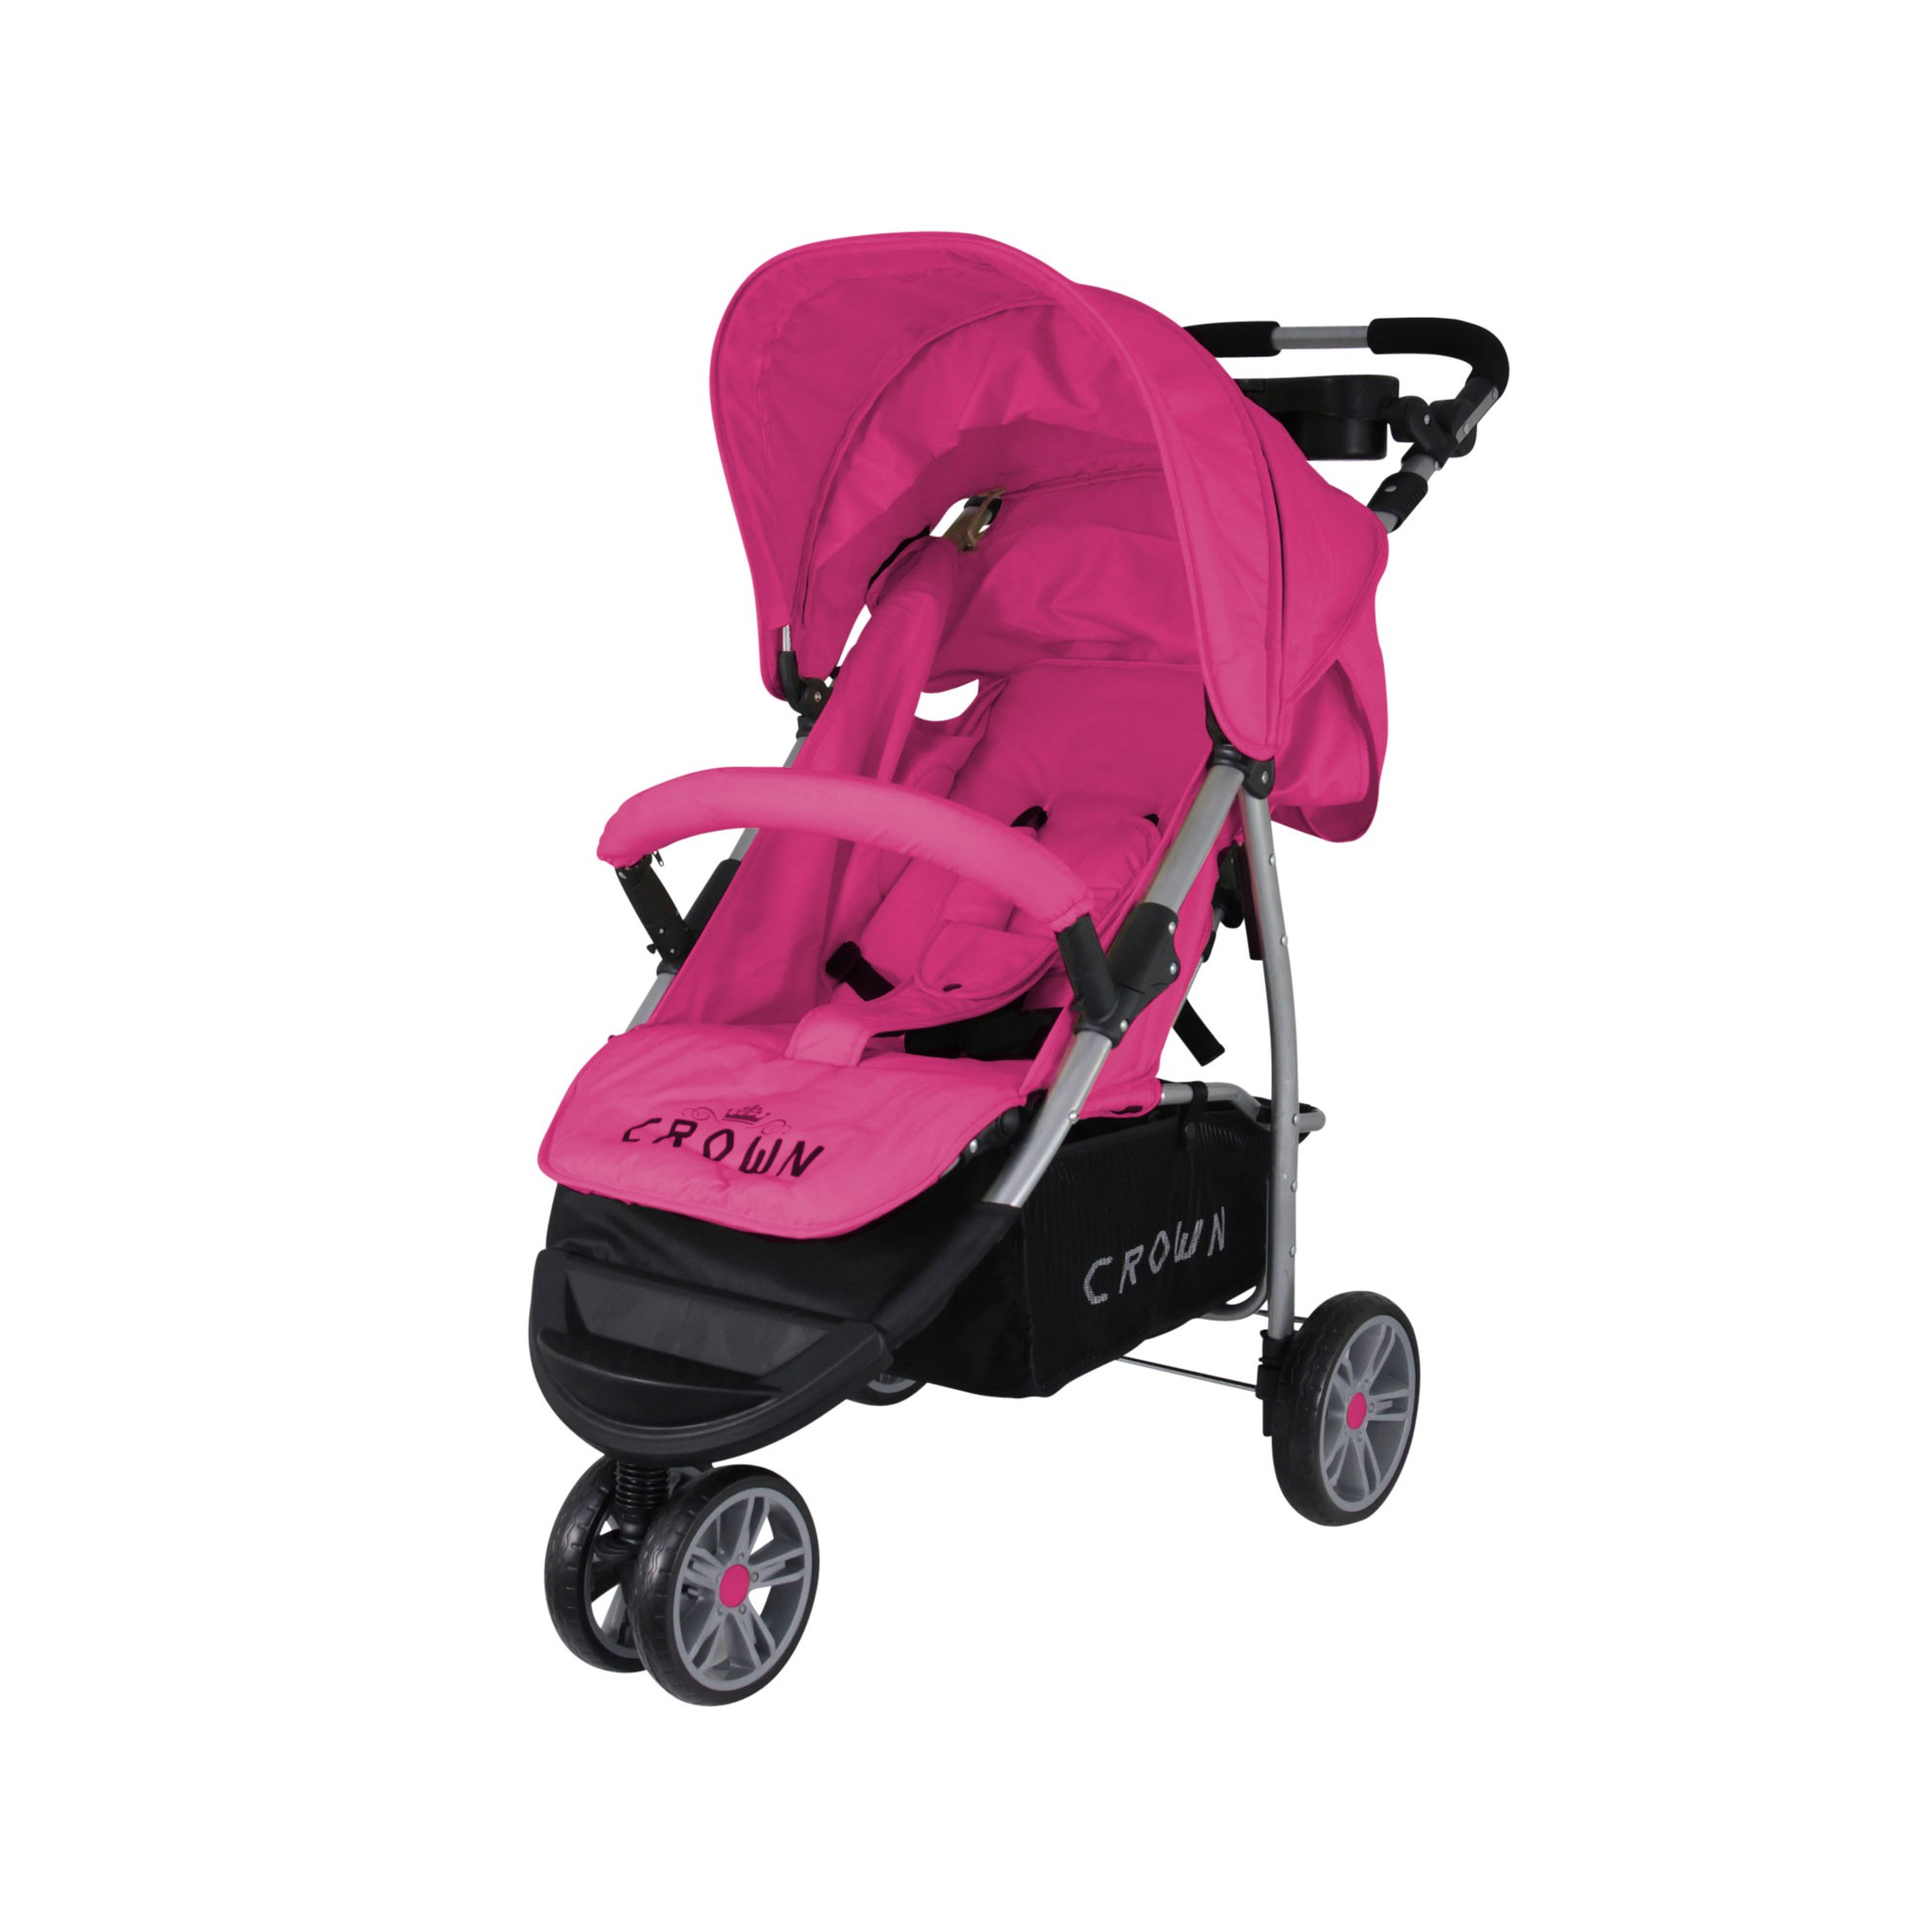 st712 crown kinderwagen buggy sport jogger farbe pink. Black Bedroom Furniture Sets. Home Design Ideas